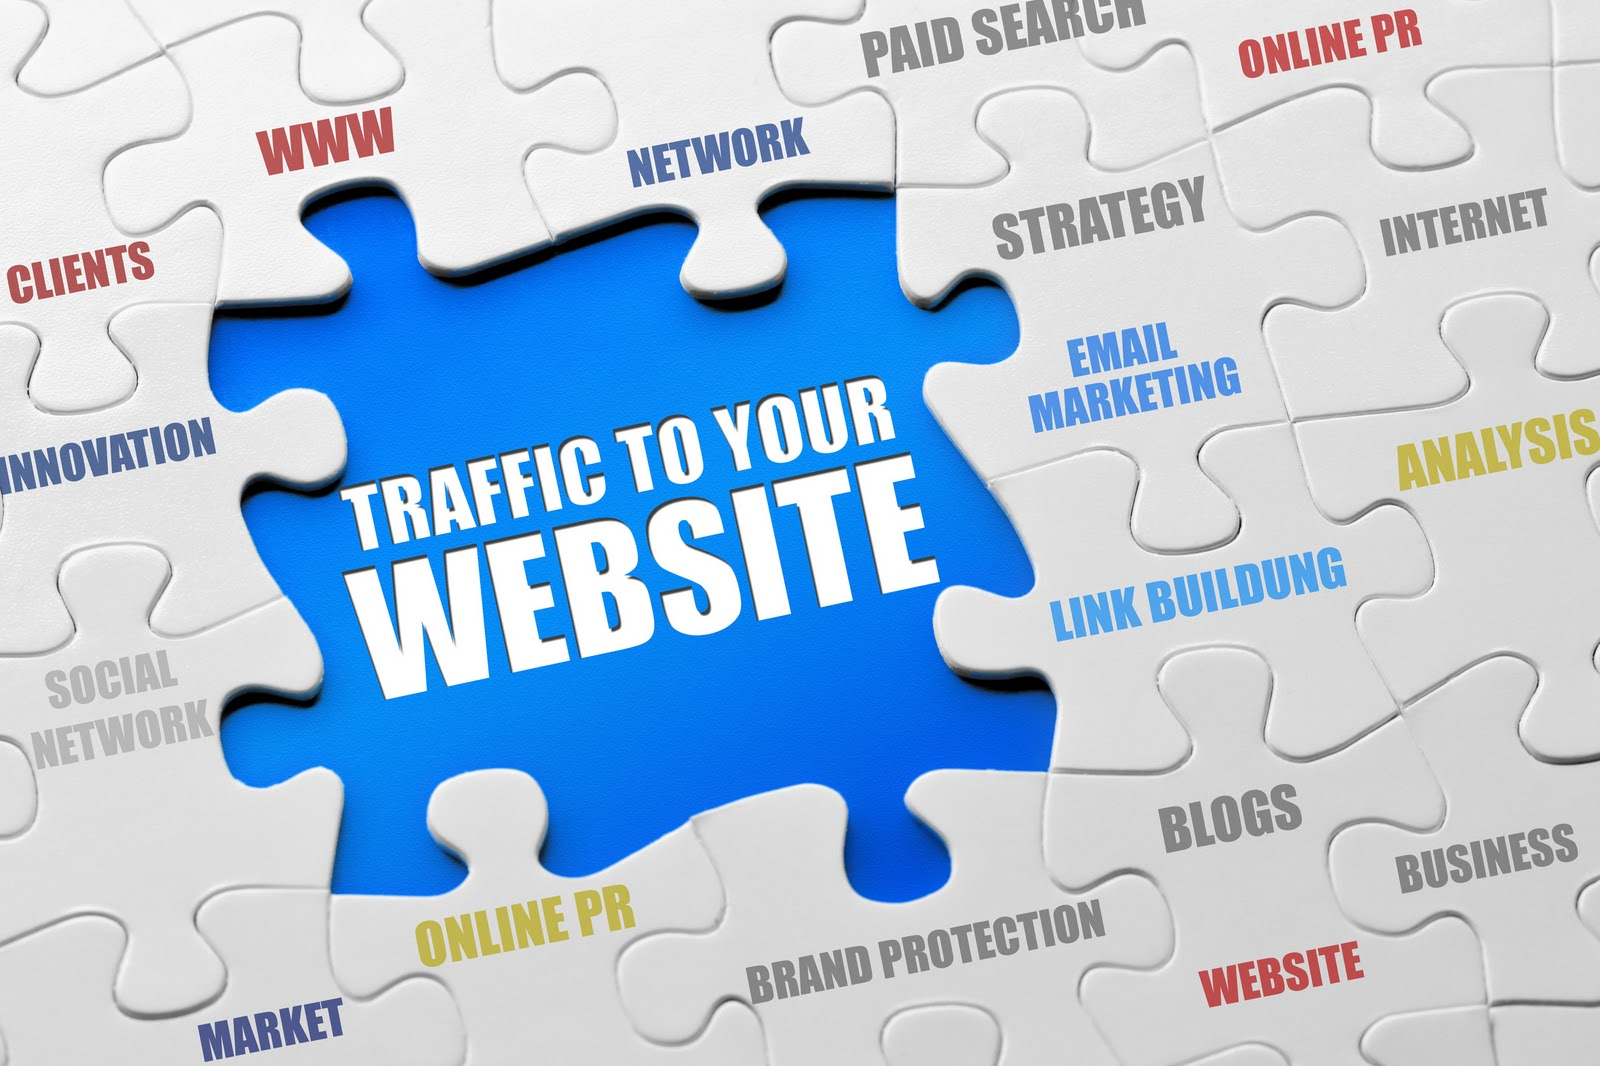 Information resources for website traffic.